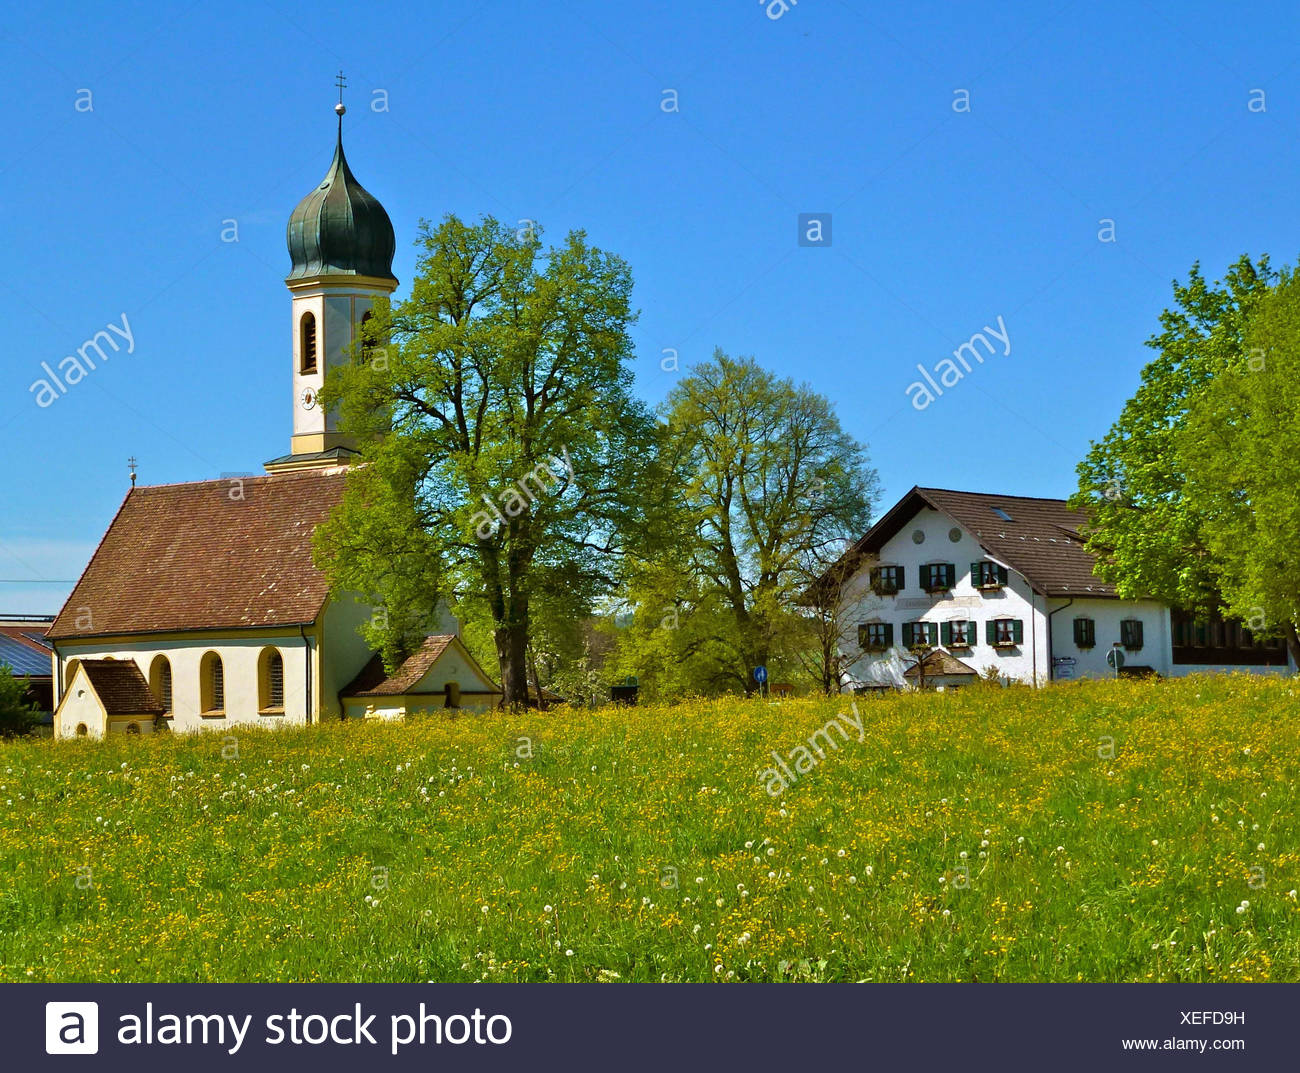 Germany, Bavaria, Froschhausen am Riegsee (lake), St. Leonhard church, Pension St. Leonhard (guesthouse), Meadow, trees, blue heaven, spring - Stock Image